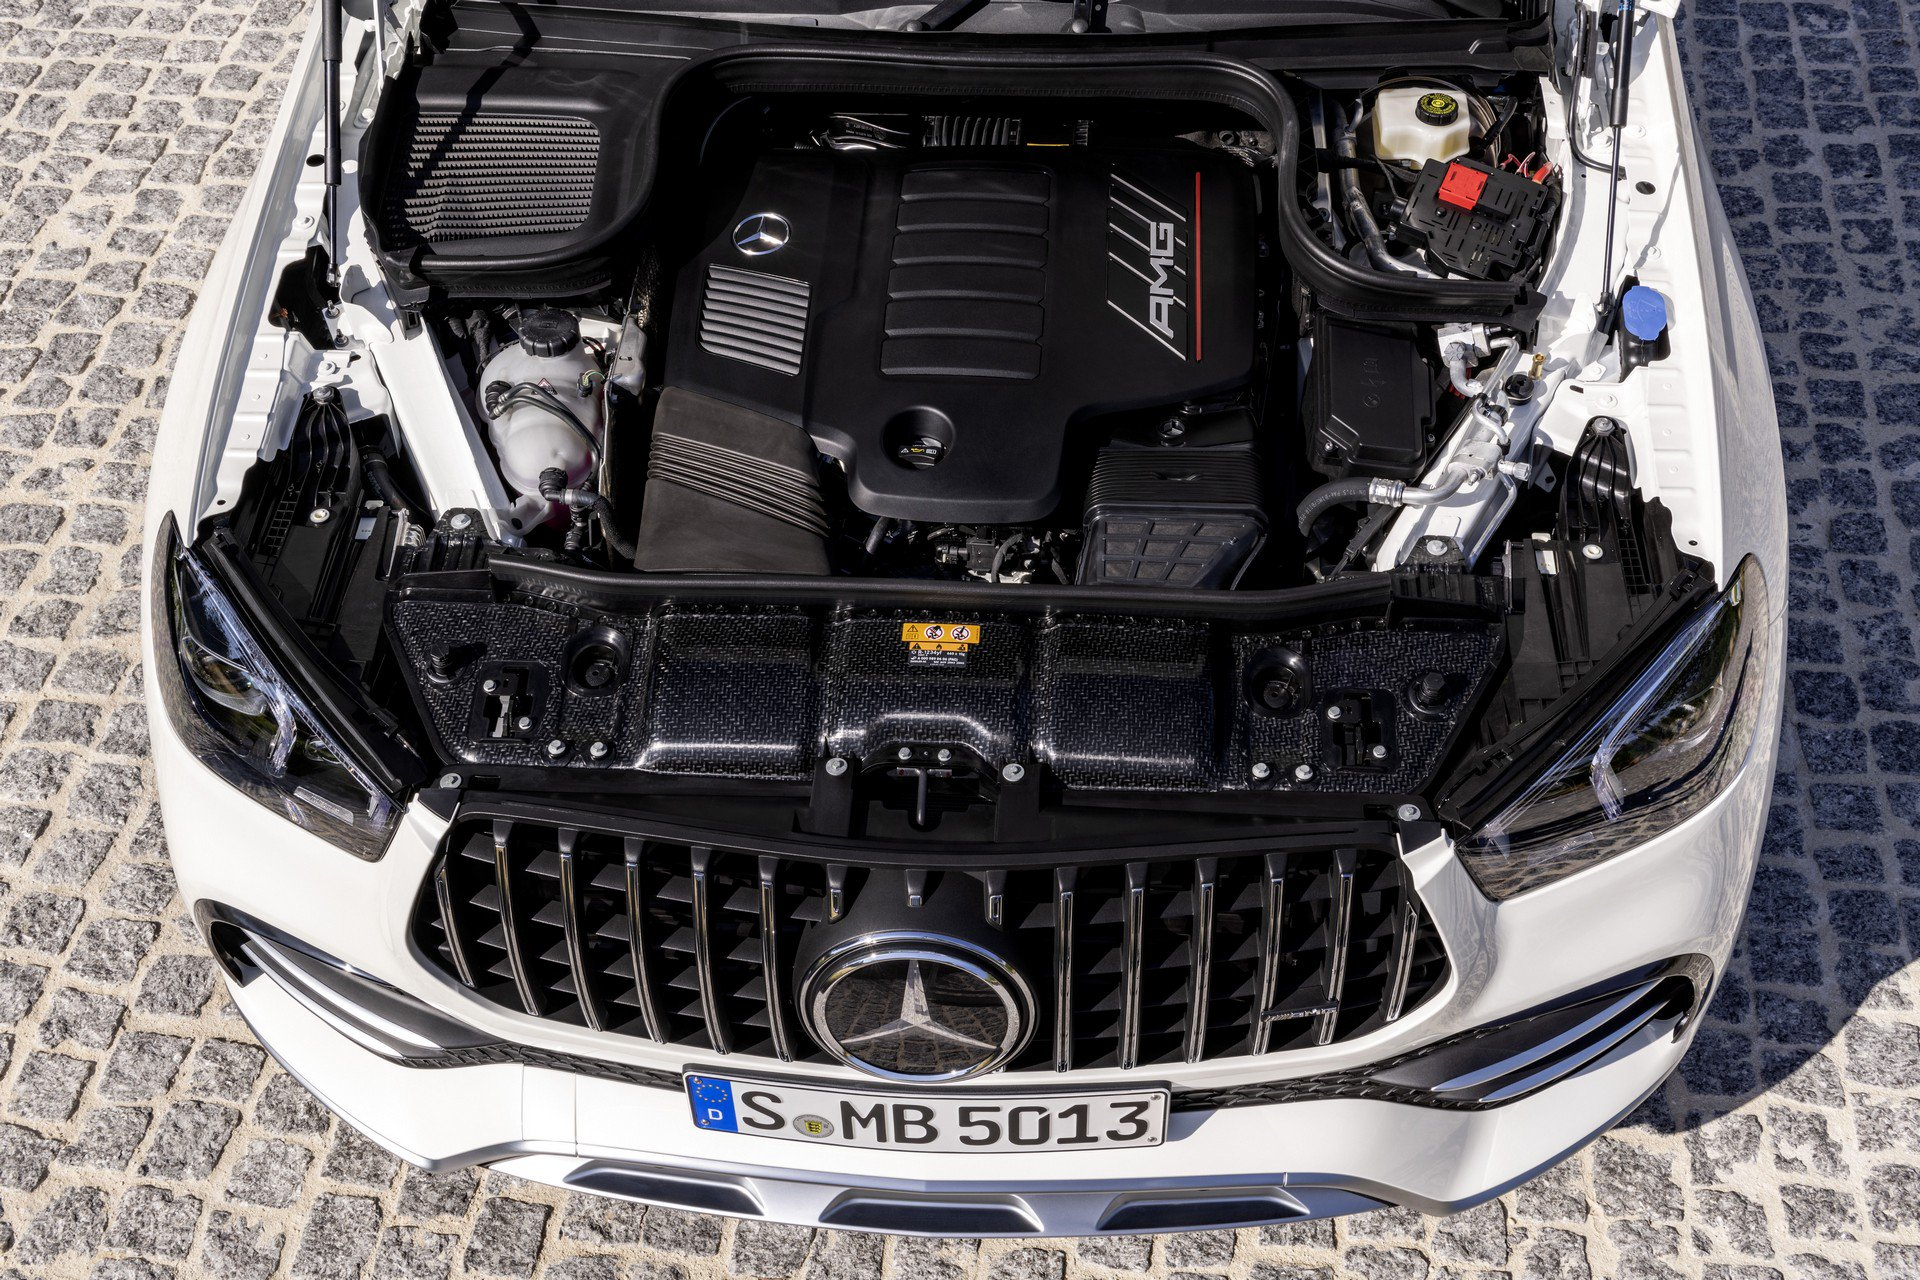 2b0a8d1f-2020-mercedes-gle-coupe-52